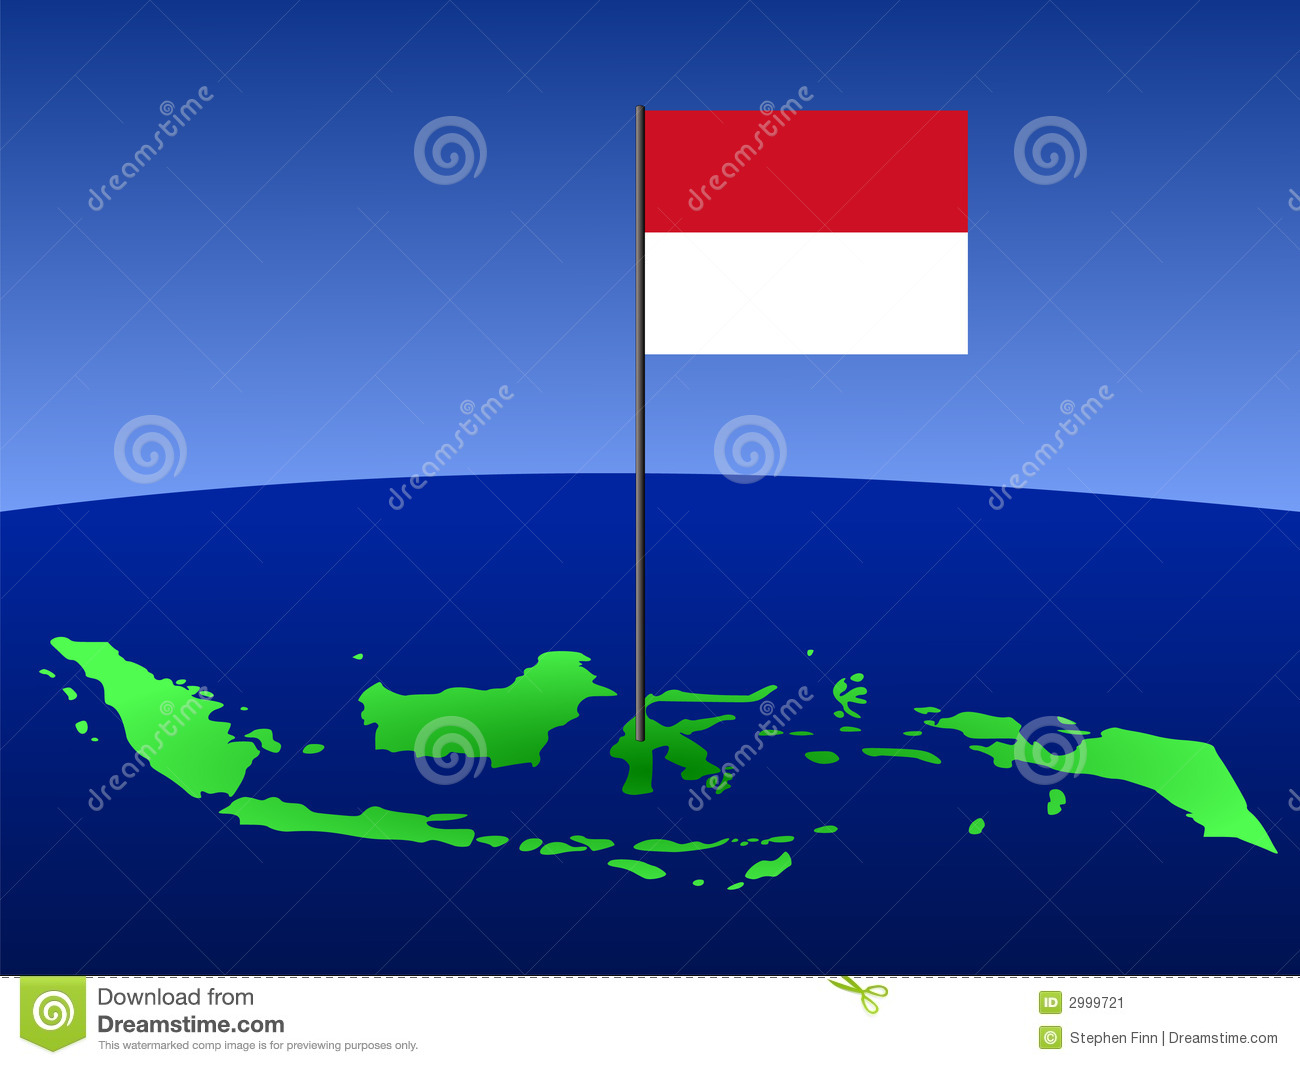 map-indonesia-flag-2999721 Indonesia Map World Atlas on myanmar map world atlas, italy map world atlas, germany map world atlas, france map world atlas, asia map world atlas, greece map world atlas, new guinea map world atlas, south pacific map world atlas, guam map world atlas, ireland map world atlas, world map world atlas, spain map world atlas, nicaragua map world atlas, united kingdom map world atlas, carribean map world atlas, norway map world atlas, dubai map world atlas, puerto rico map world atlas, russia map world atlas, martinique map world atlas,